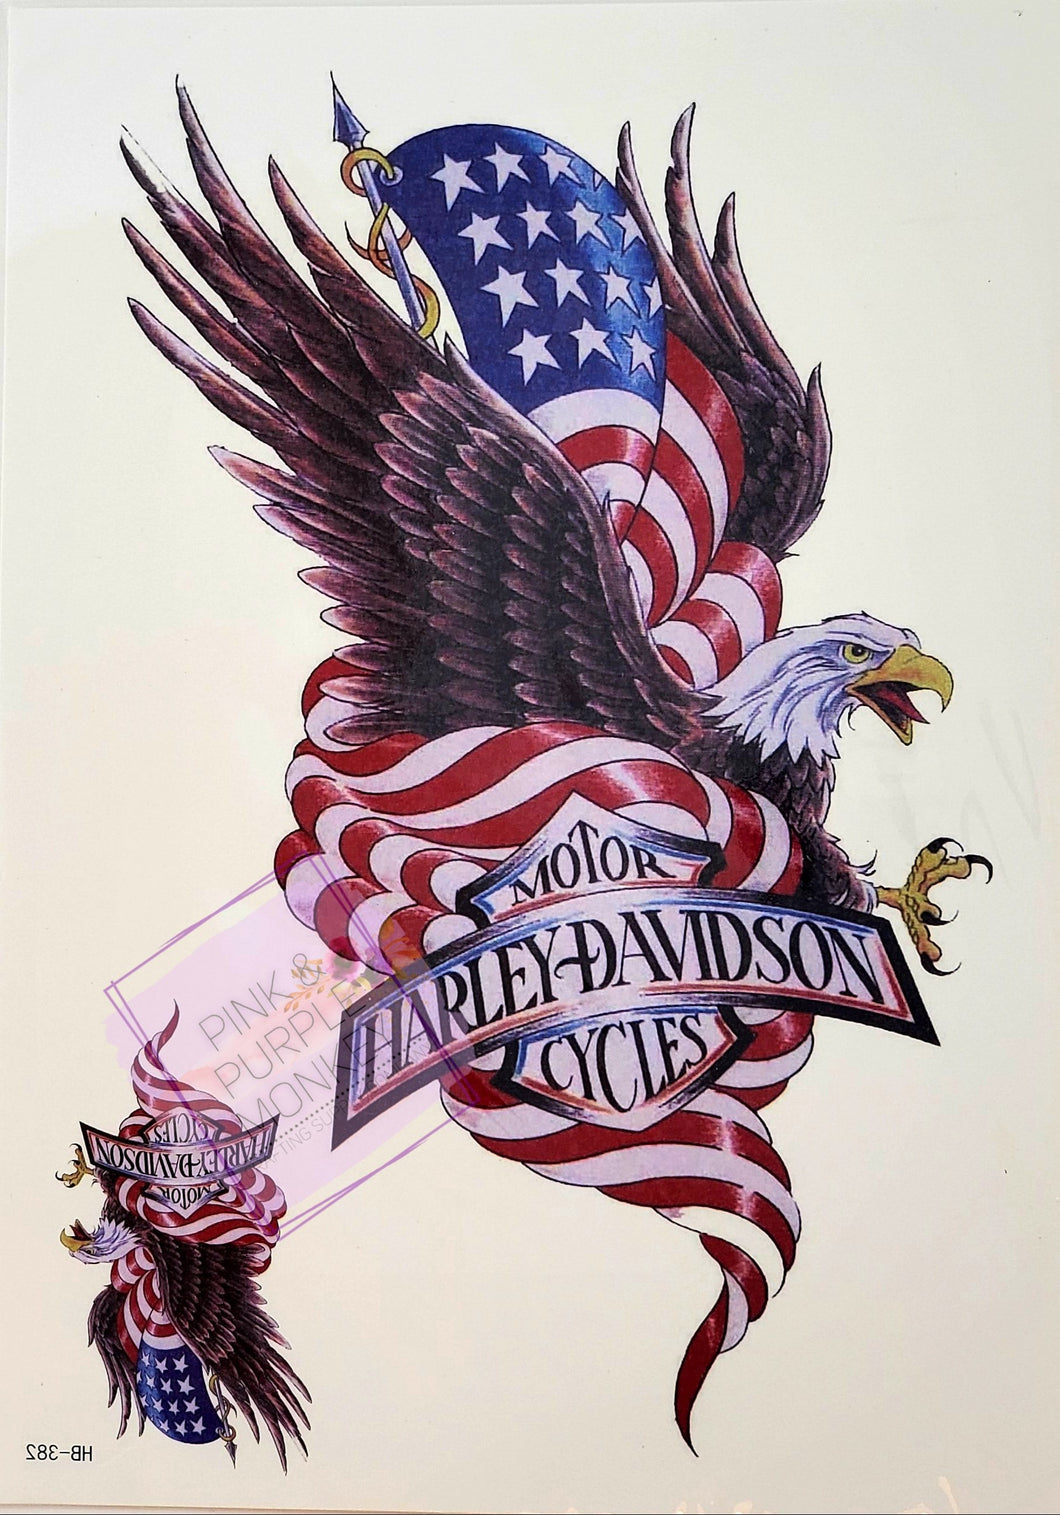 Harley Davidson Eagle and American Flag Tattoo - 8 x 5